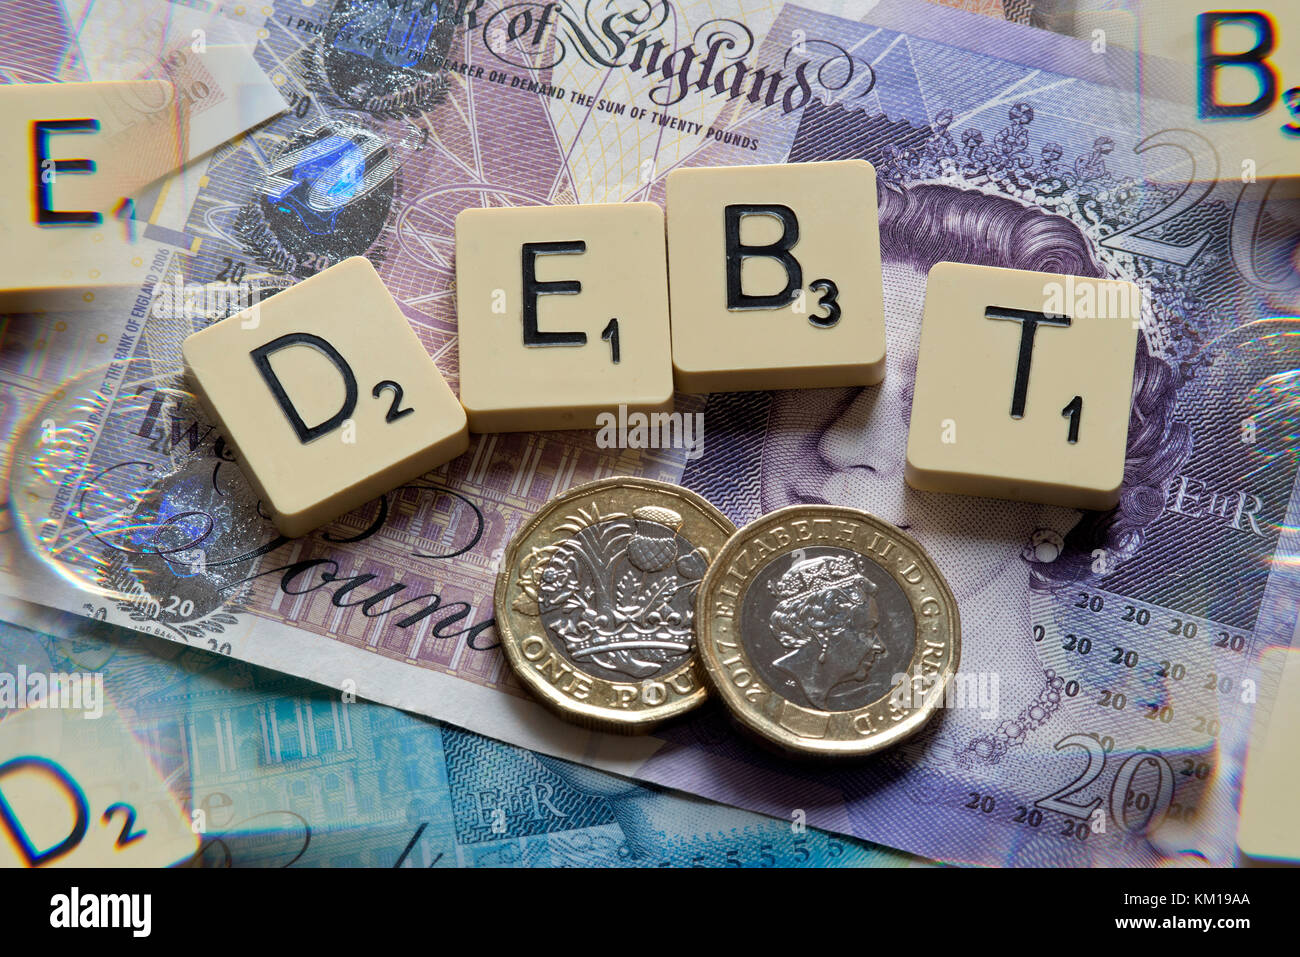 Scrabble letters spelling DEBT with new British pounds (GBP) £20, £10, £5 notes and new British pound - Stock Image